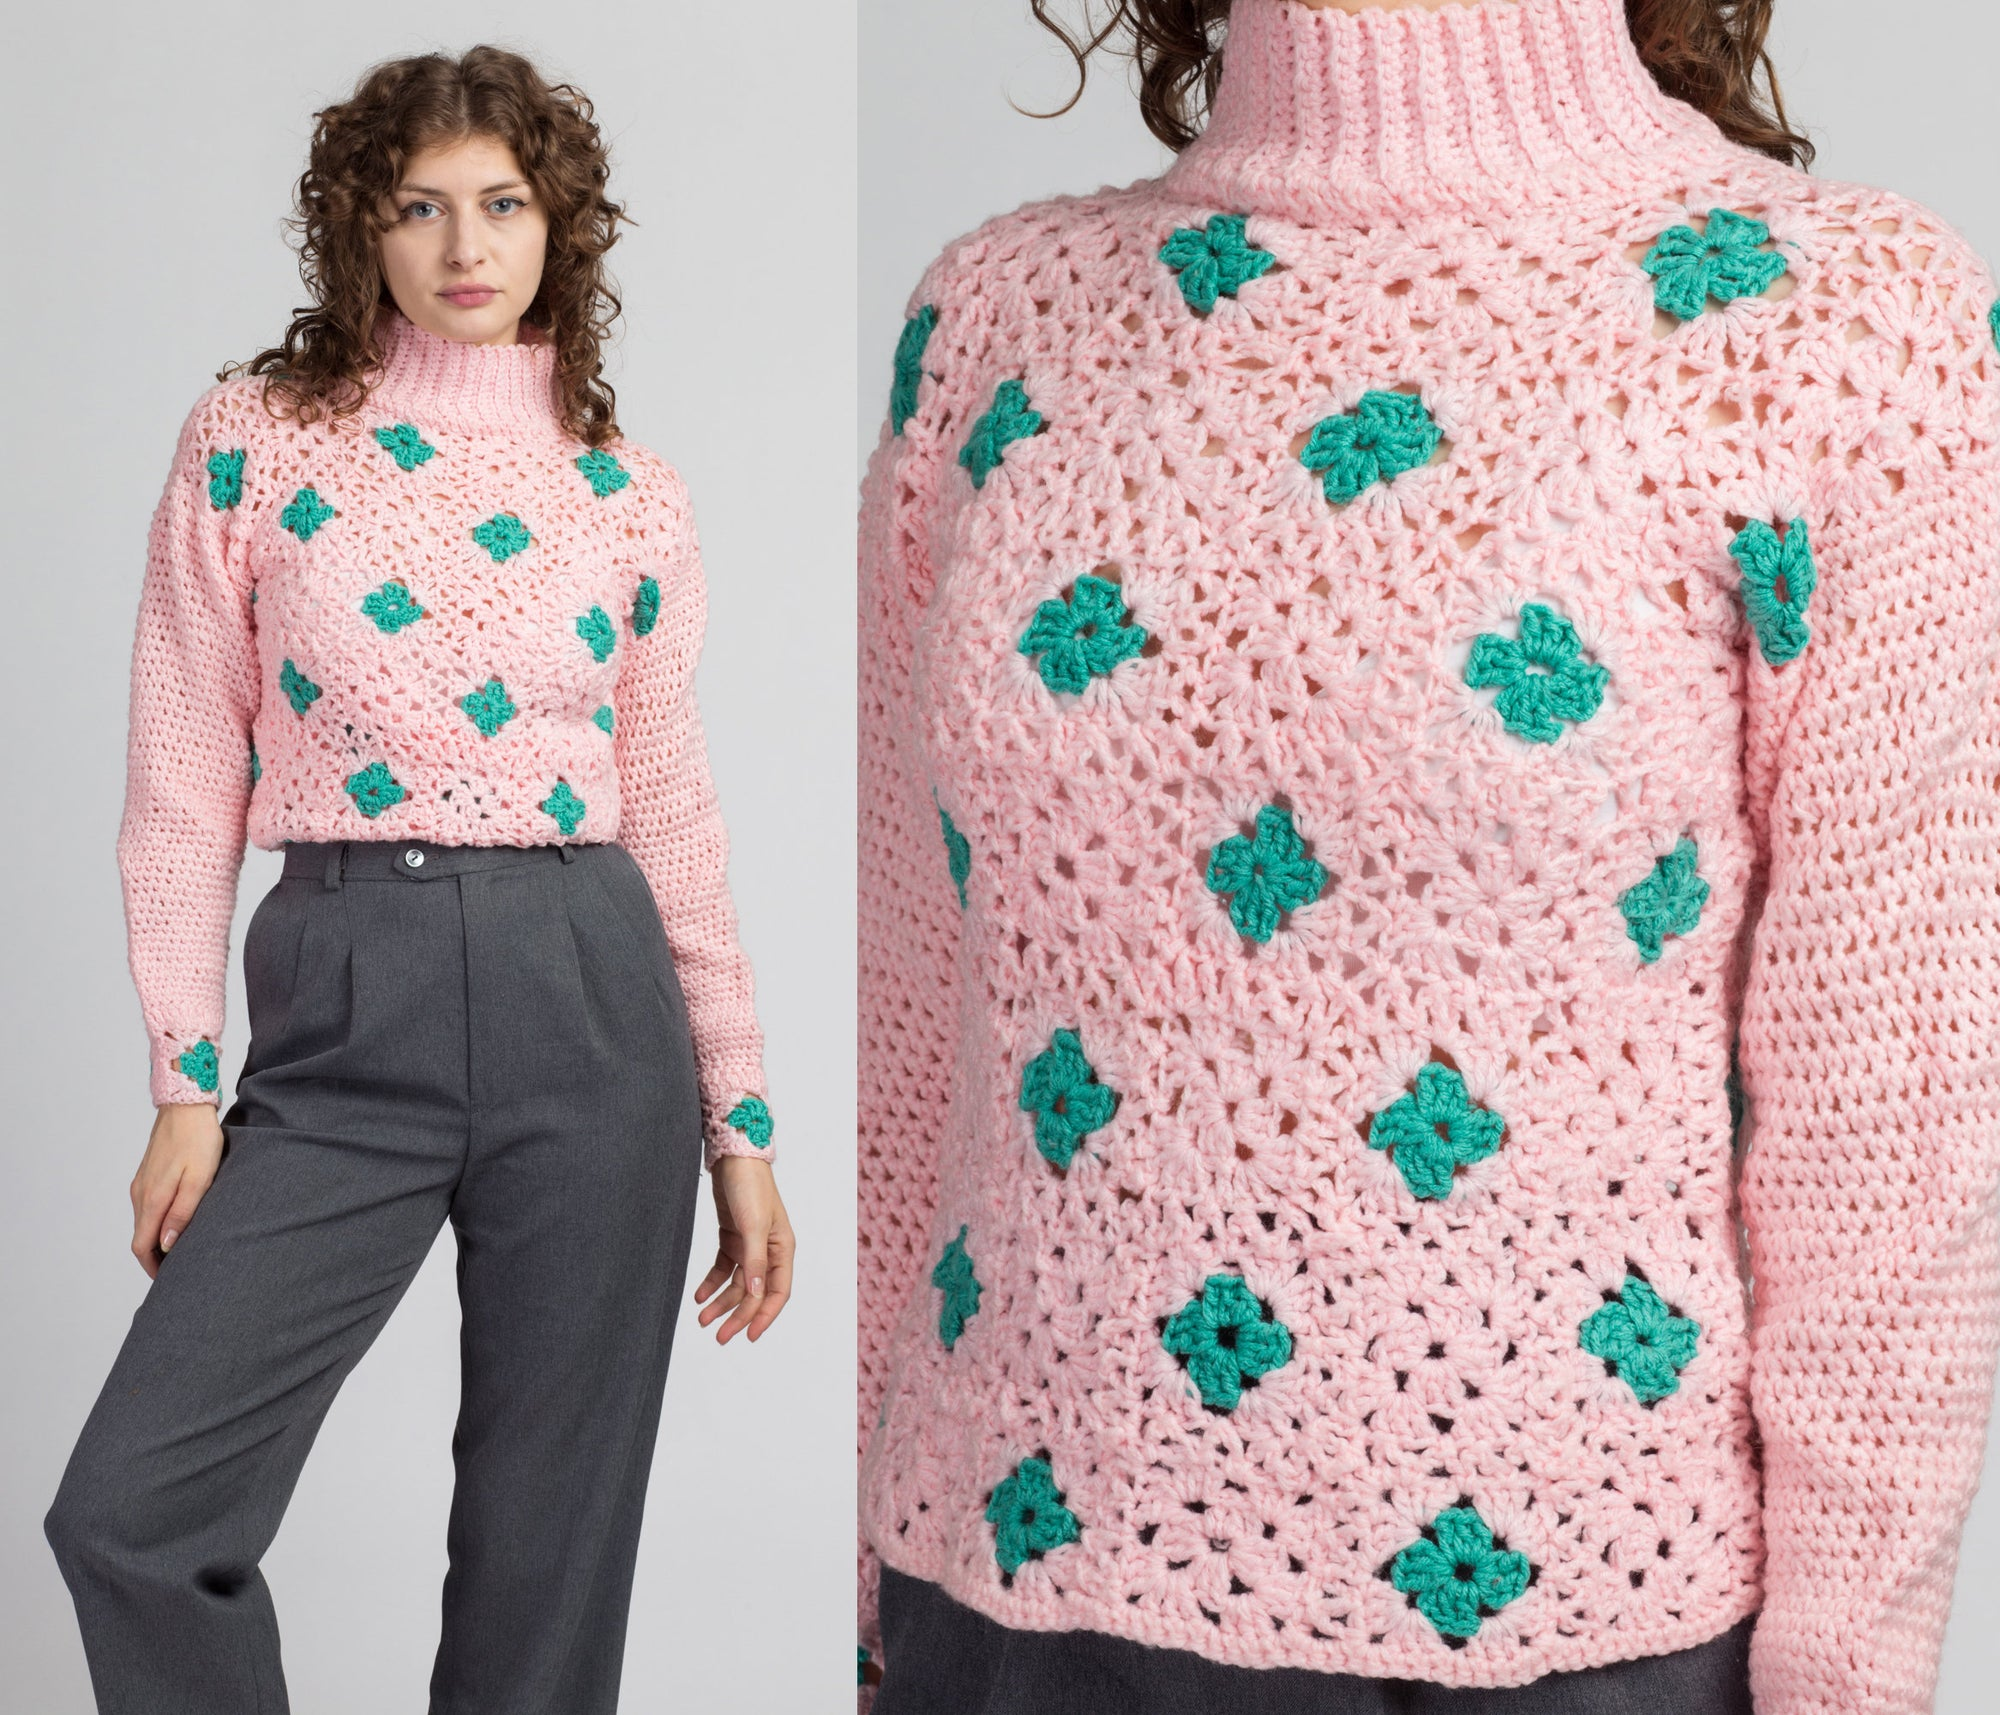 Vintage Pink Crochet Knit Turtleneck Sweater - Small to Medium